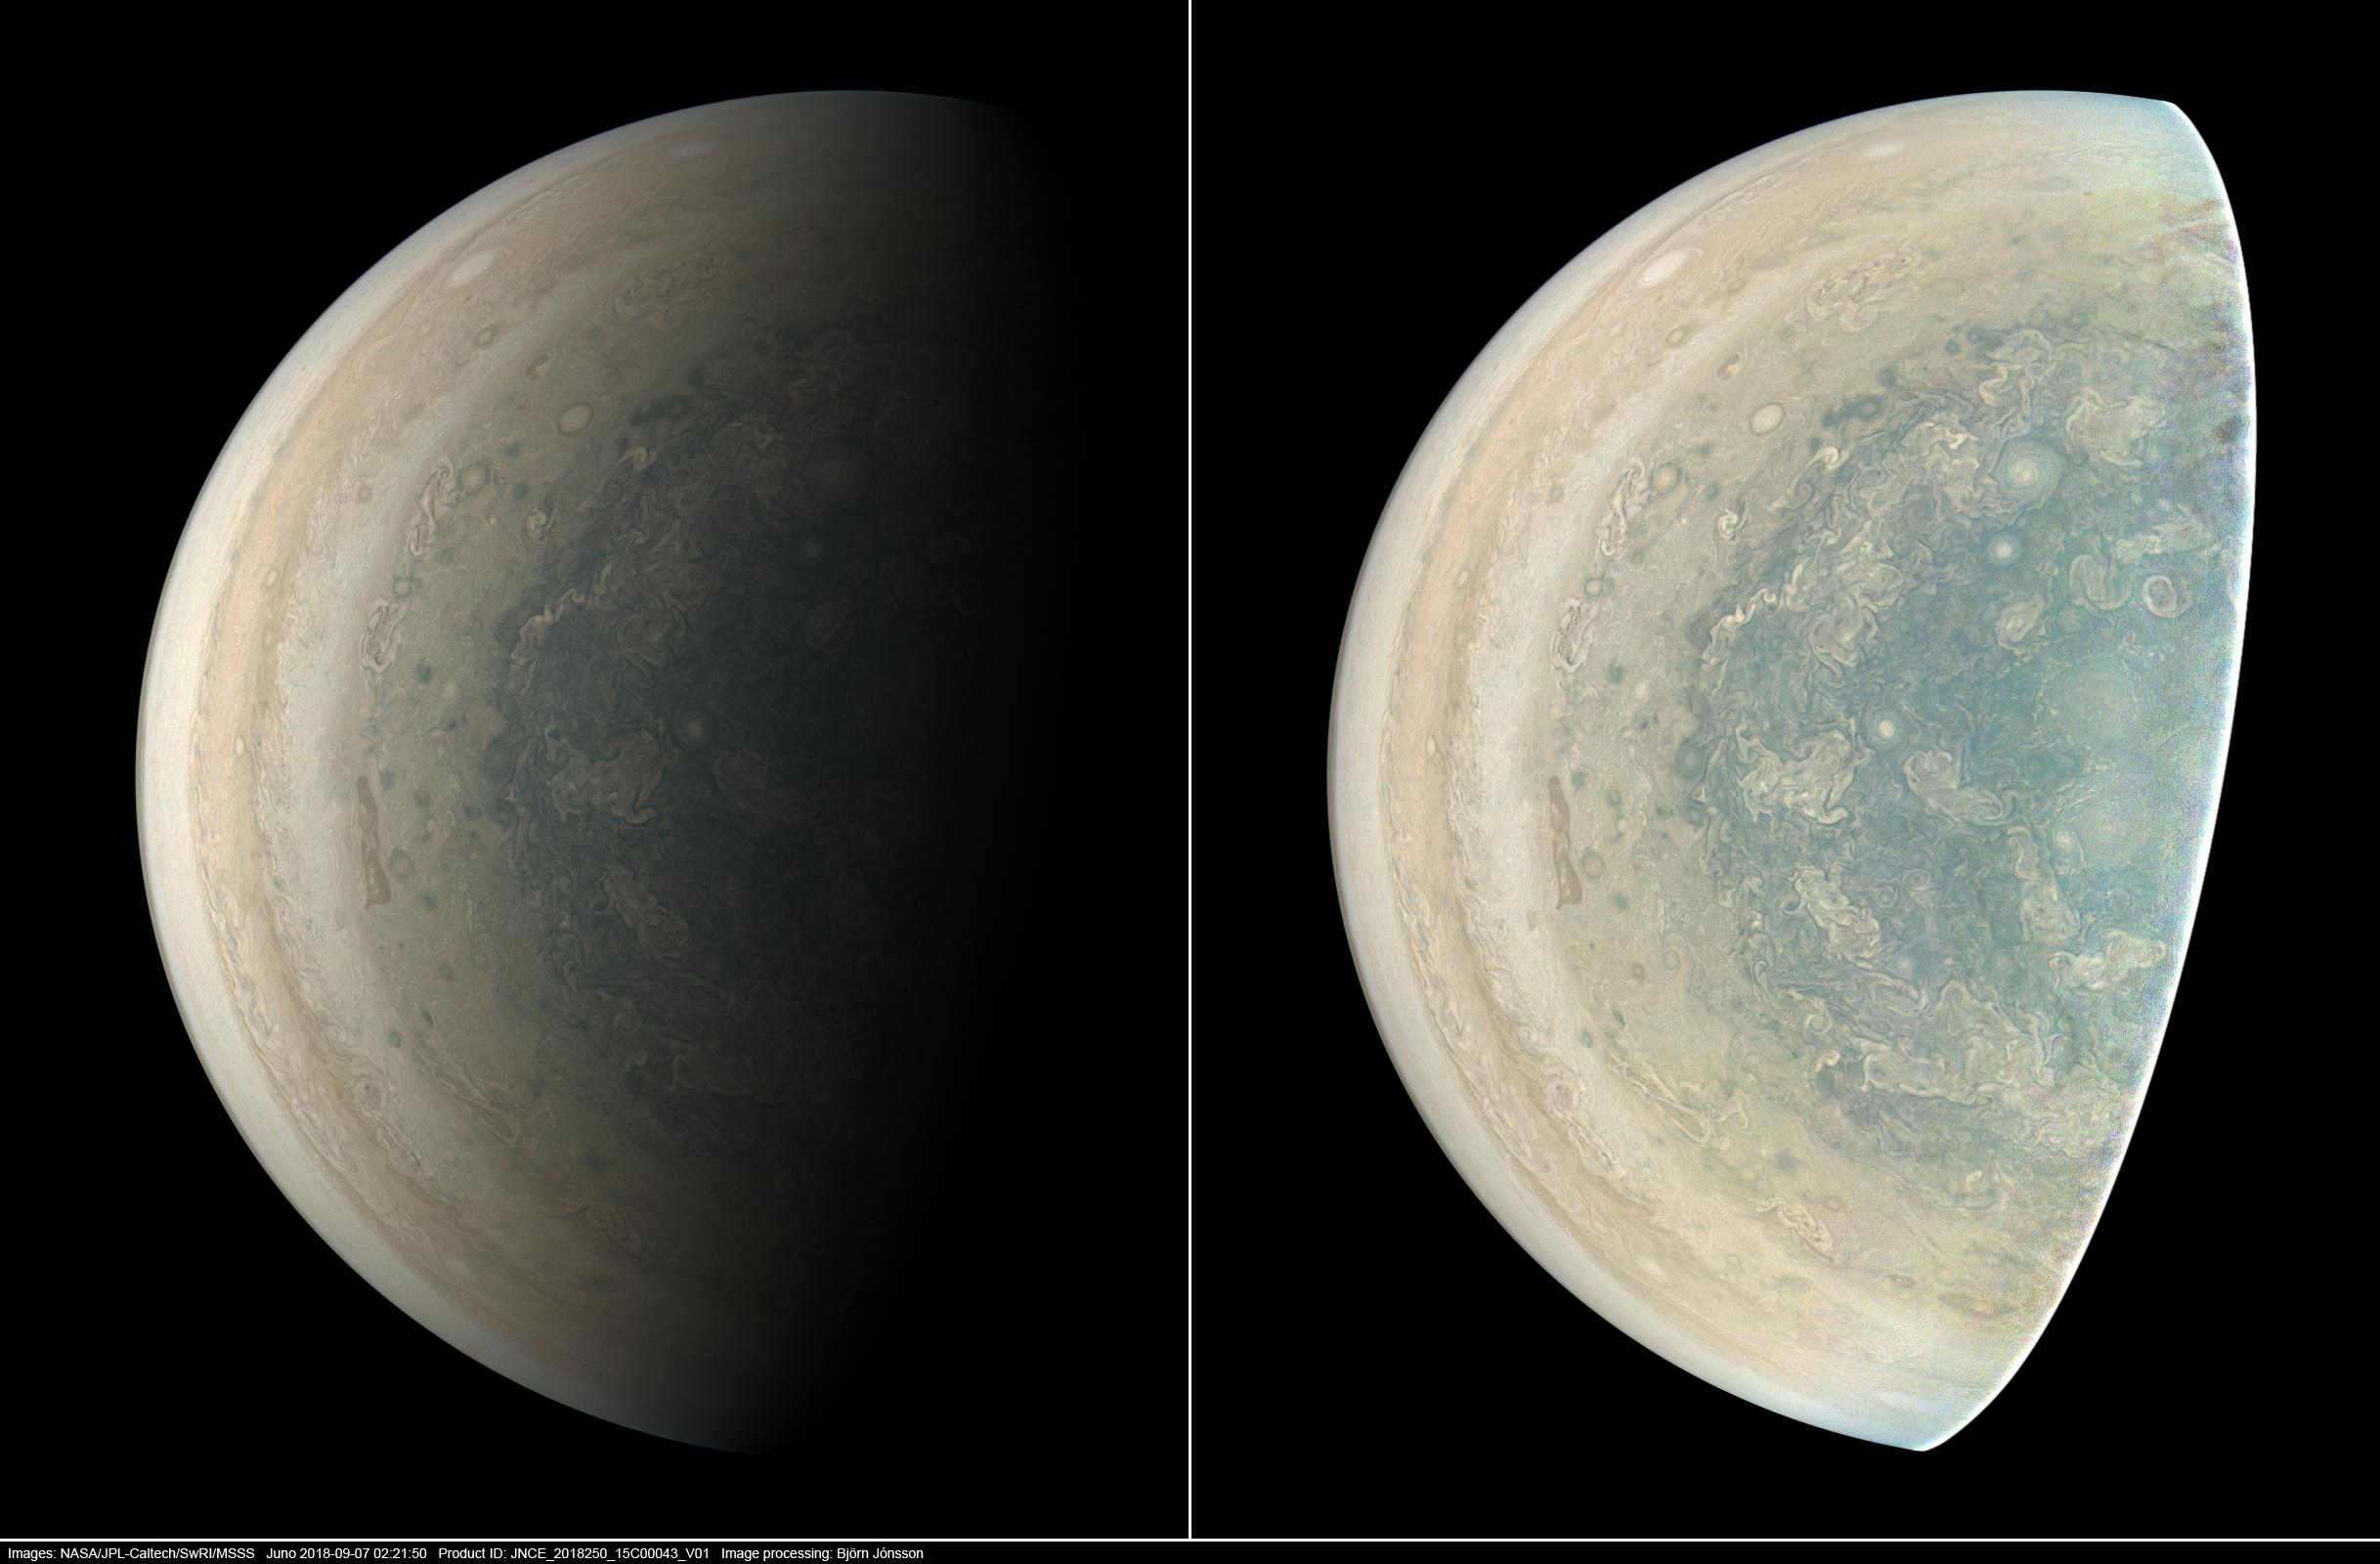 Jupiters southern circumpolar cyclones are captured in this image from NASAs Juno spacecraft.